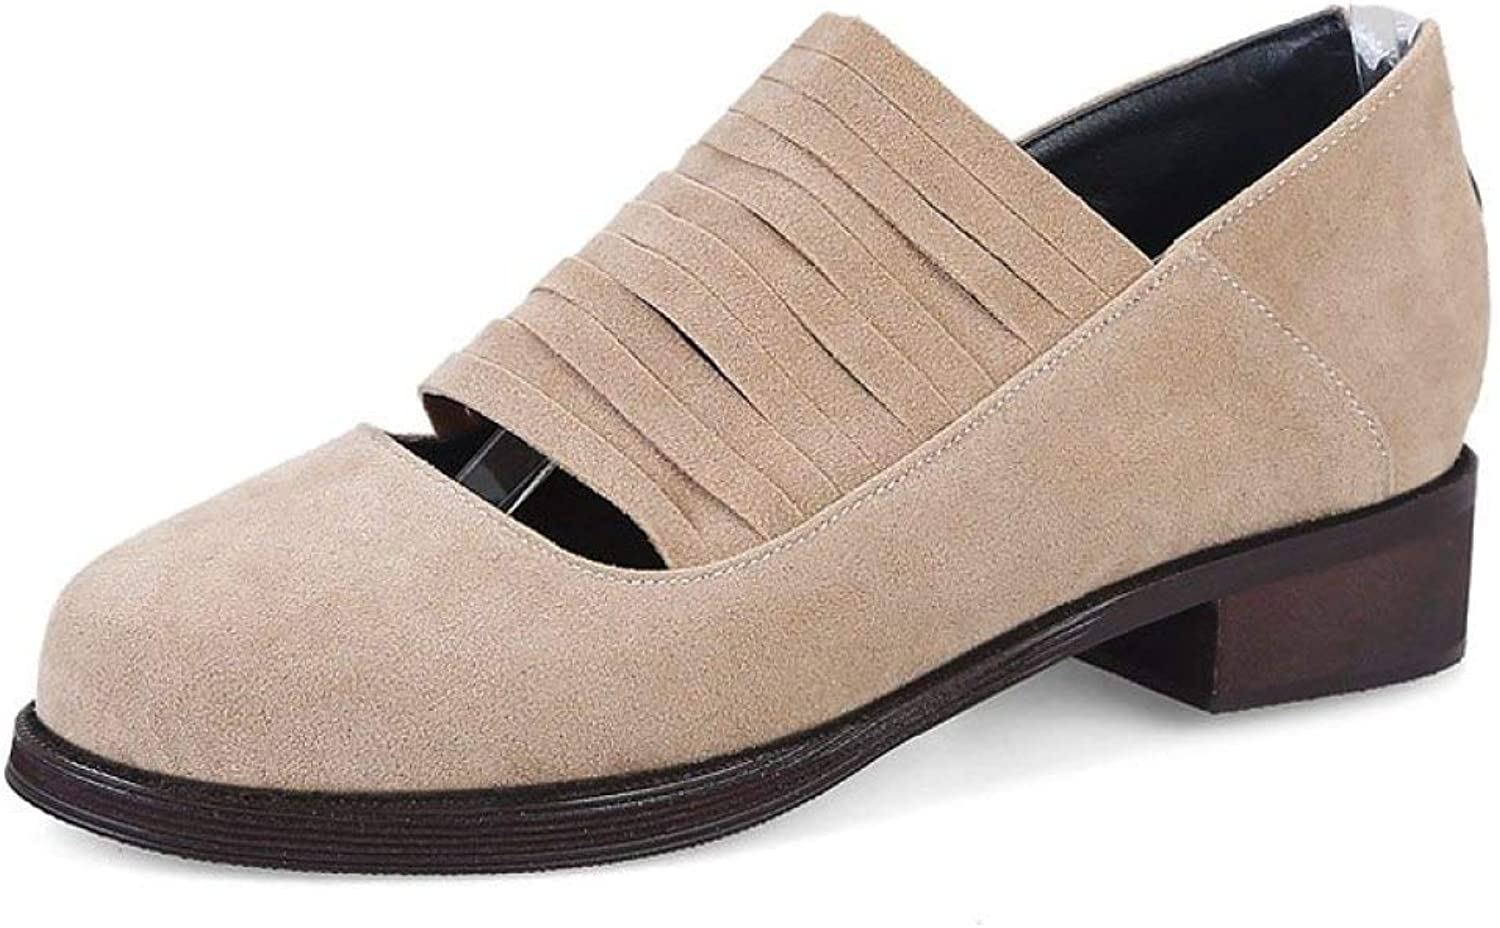 Fay Waters Women's Suede Cut Out Oxfords Round Toe Slip On Low Heel Hollow Loafer shoes